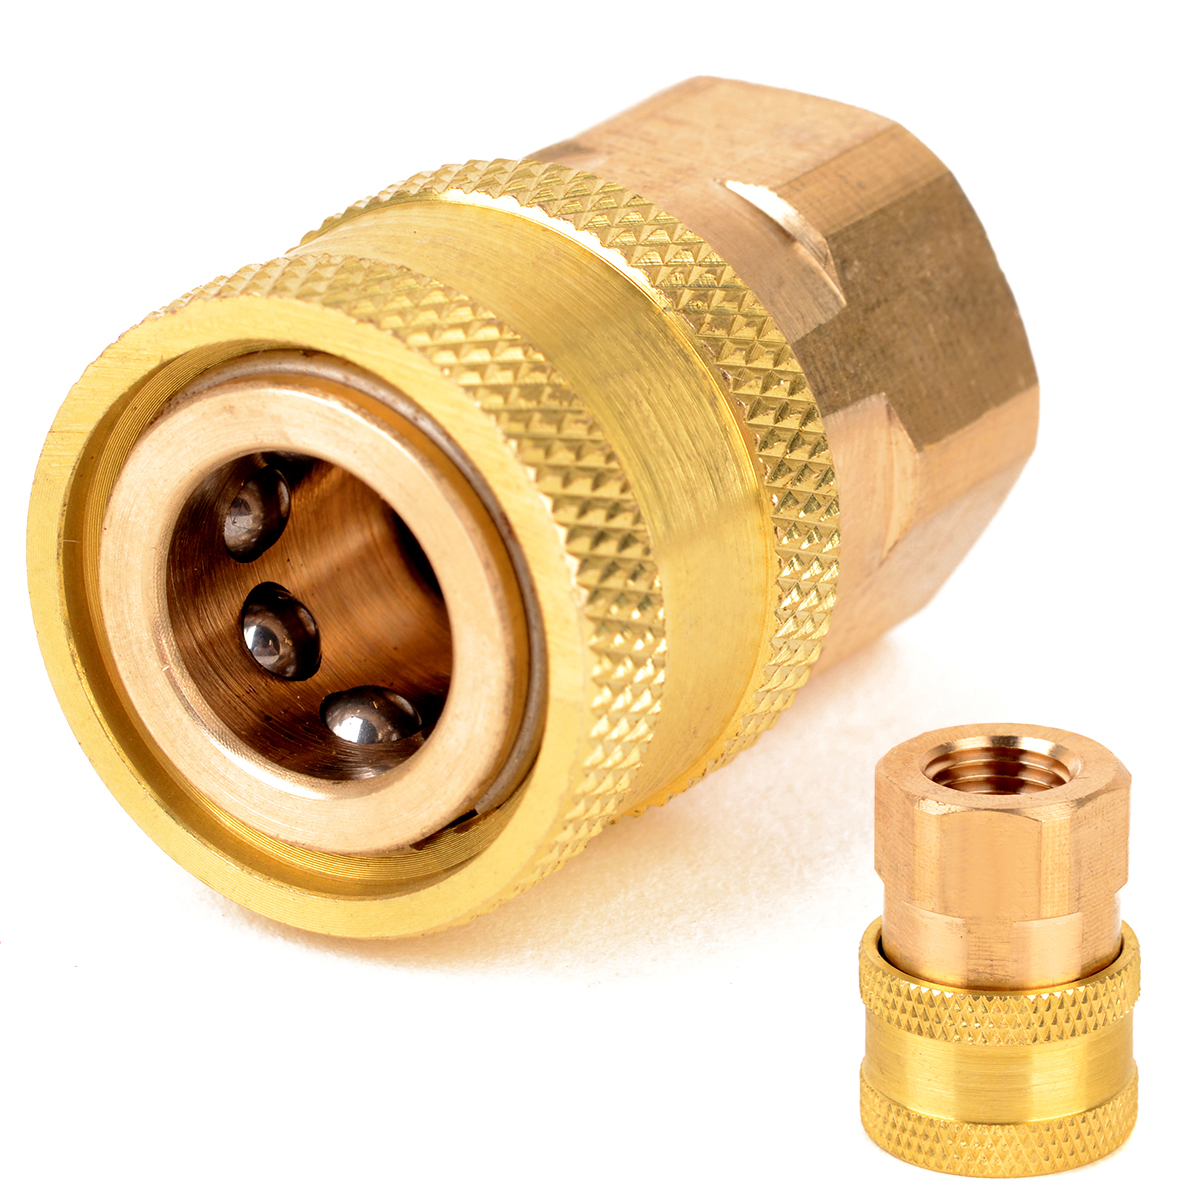 1pc New Durable 58 Type 1/4 Female NPT Brass Quick Connect Coupler Pipe Thread Adapter for Pressure Washer Mayitr 40mm*15mm зимняя шина nokian hakkapeliitta r2 245 40 r20 99r